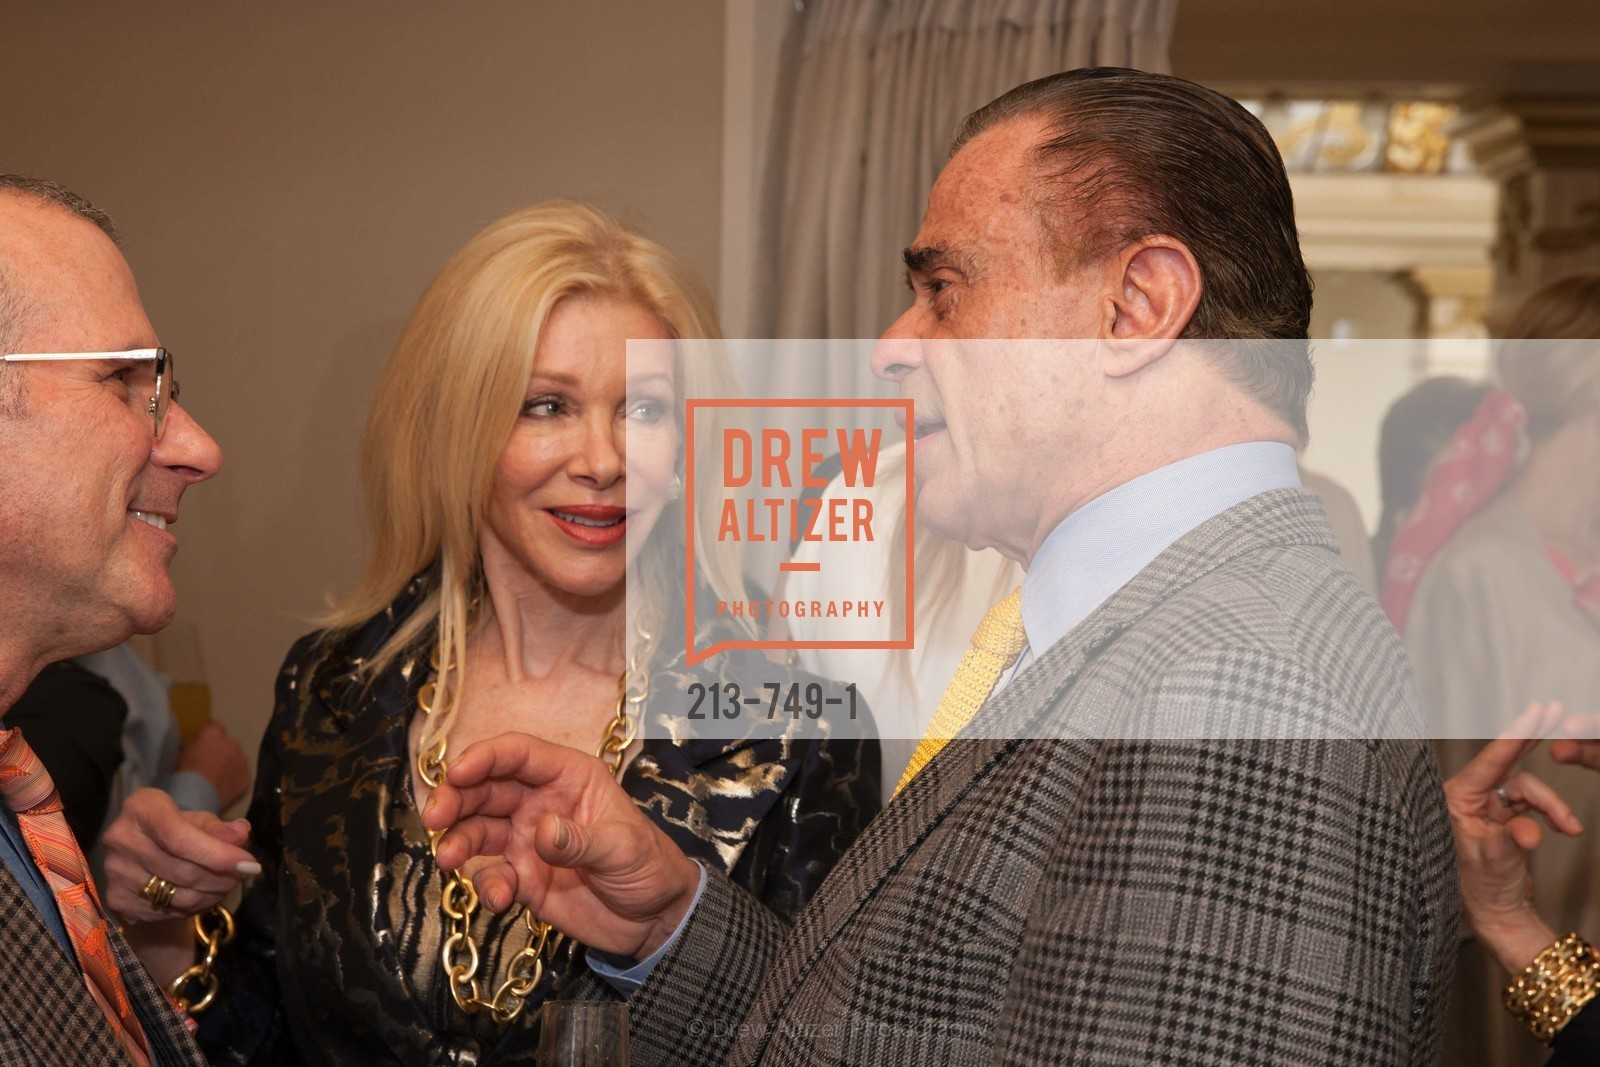 Pamala Deikel, PETER COPPING Meets and Greets OSCAR DELA RENTA Clients and Associates at NEIMAN MARCUS, US, May 23rd, 2015,Drew Altizer, Drew Altizer Photography, full-service agency, private events, San Francisco photographer, photographer california